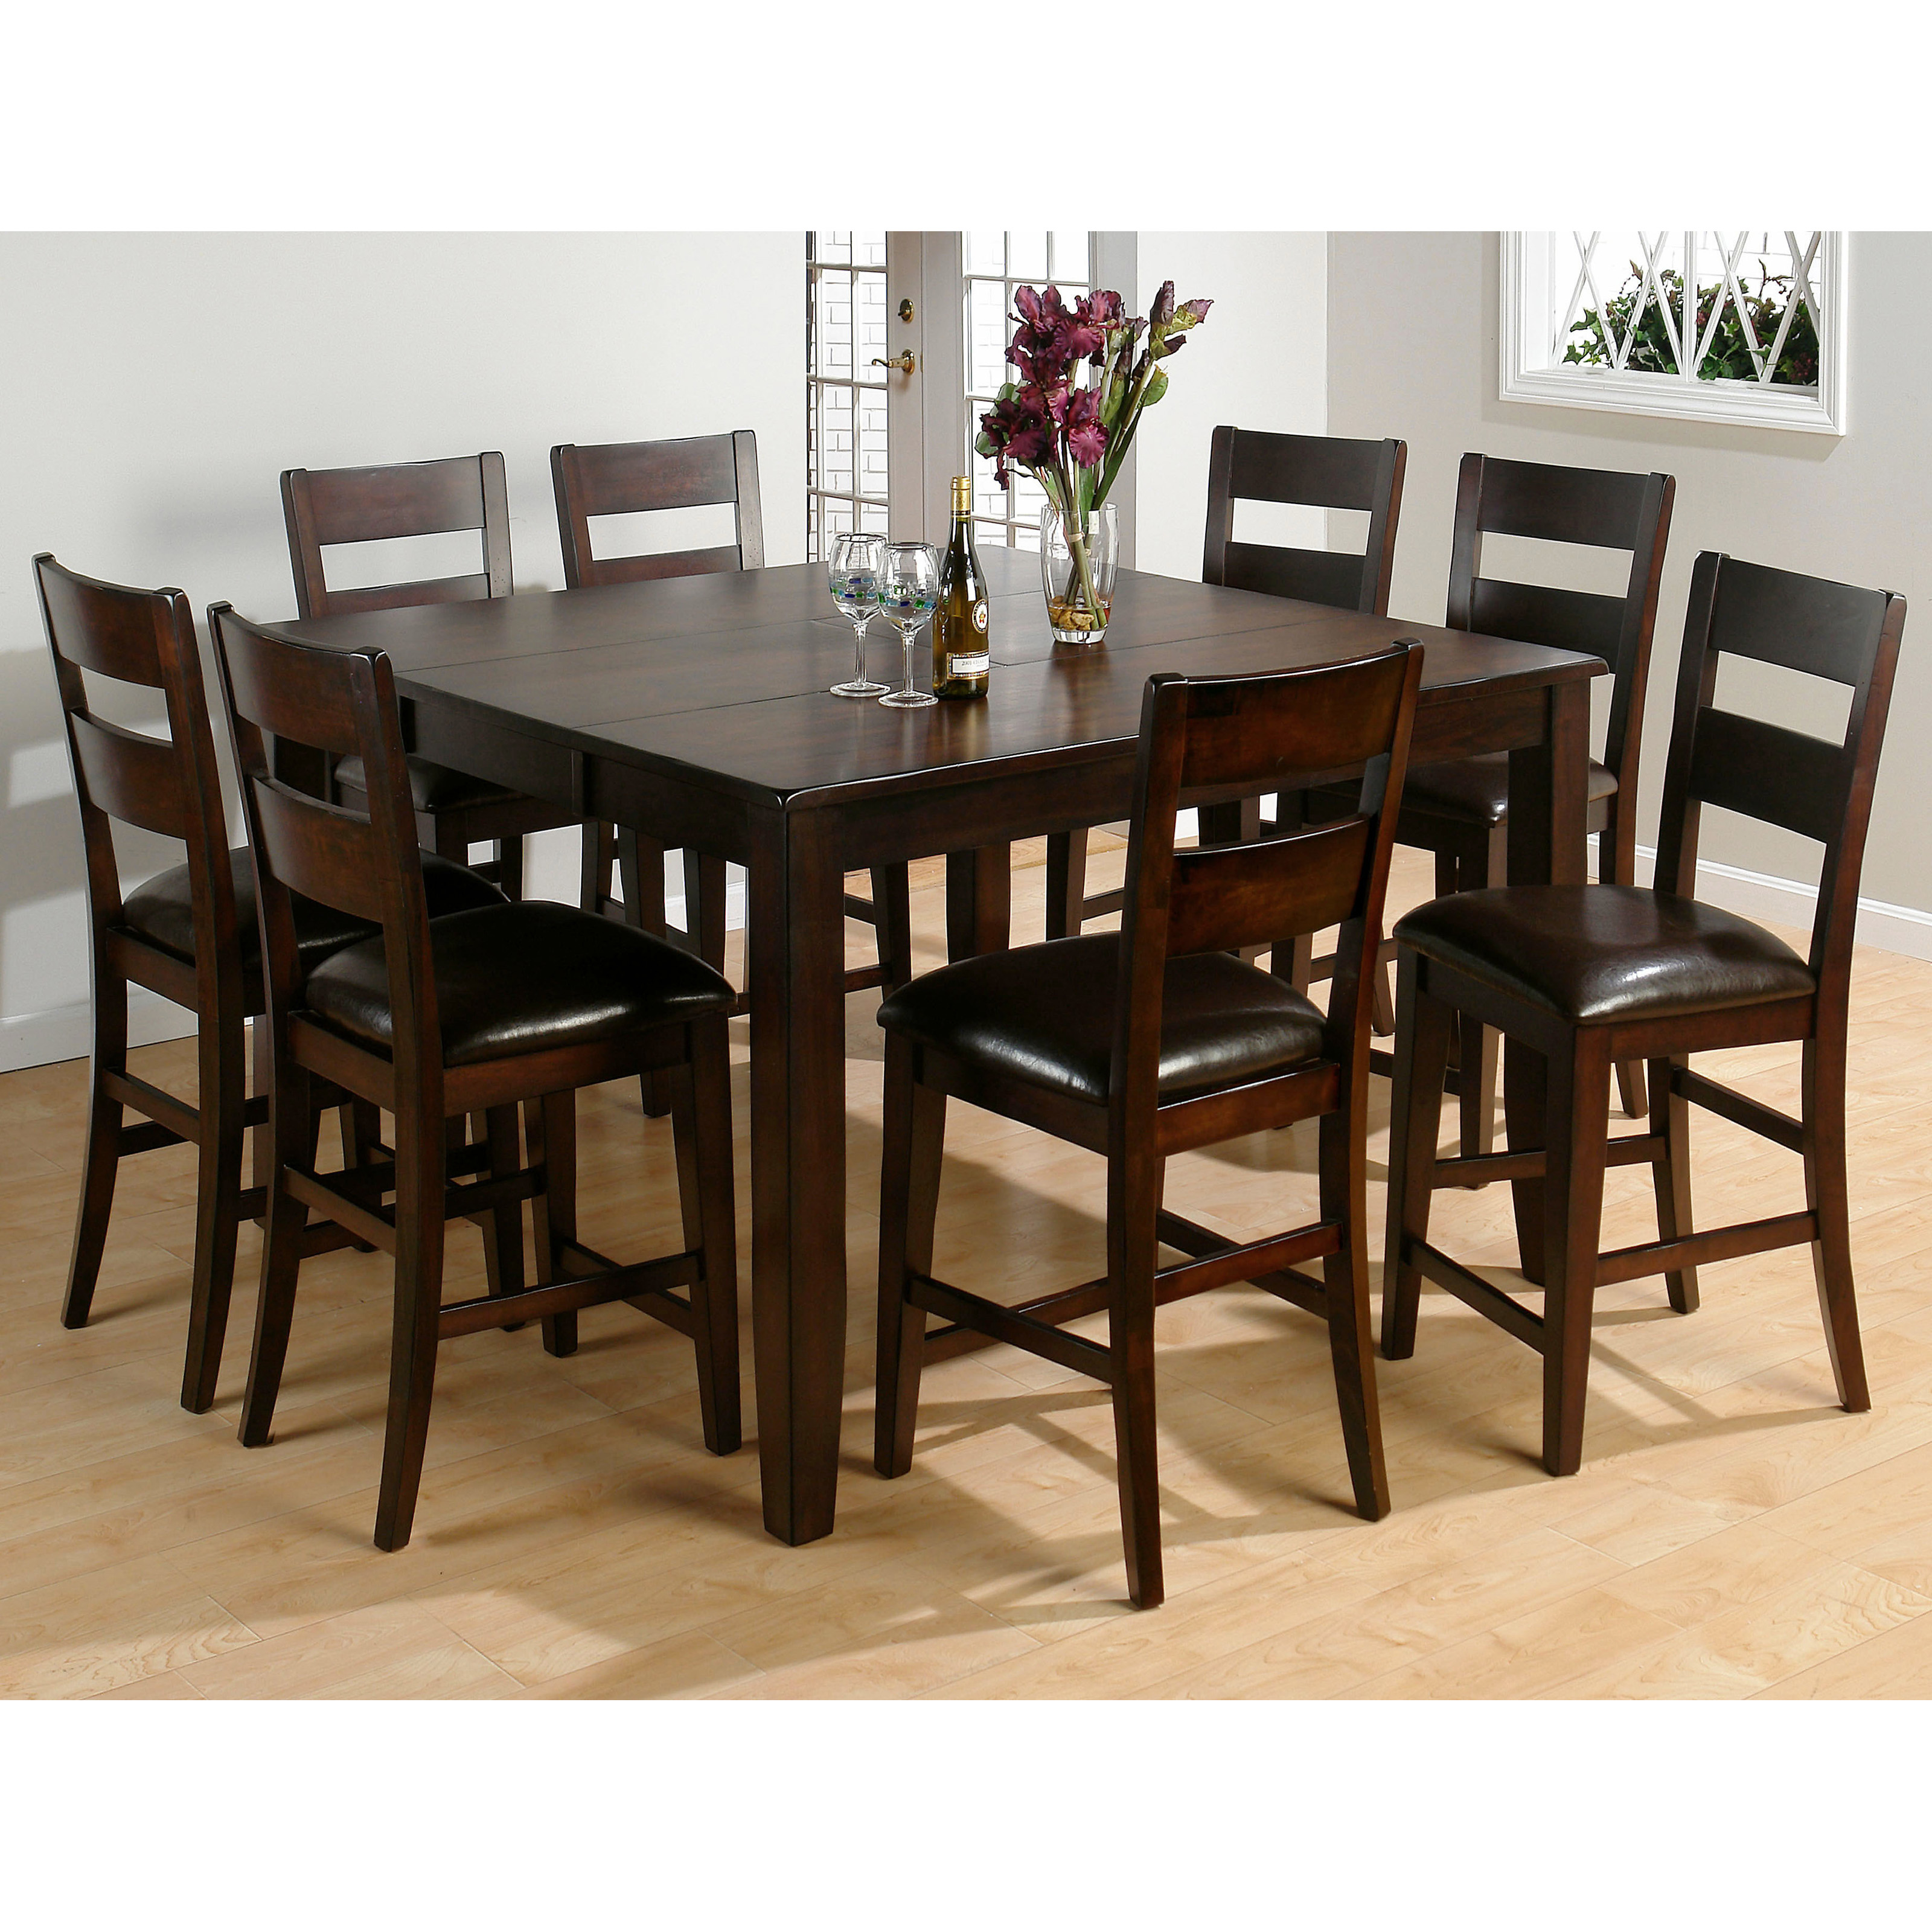 Jofran rustic prairie 9 piece counter height dining set for Counter height dining set